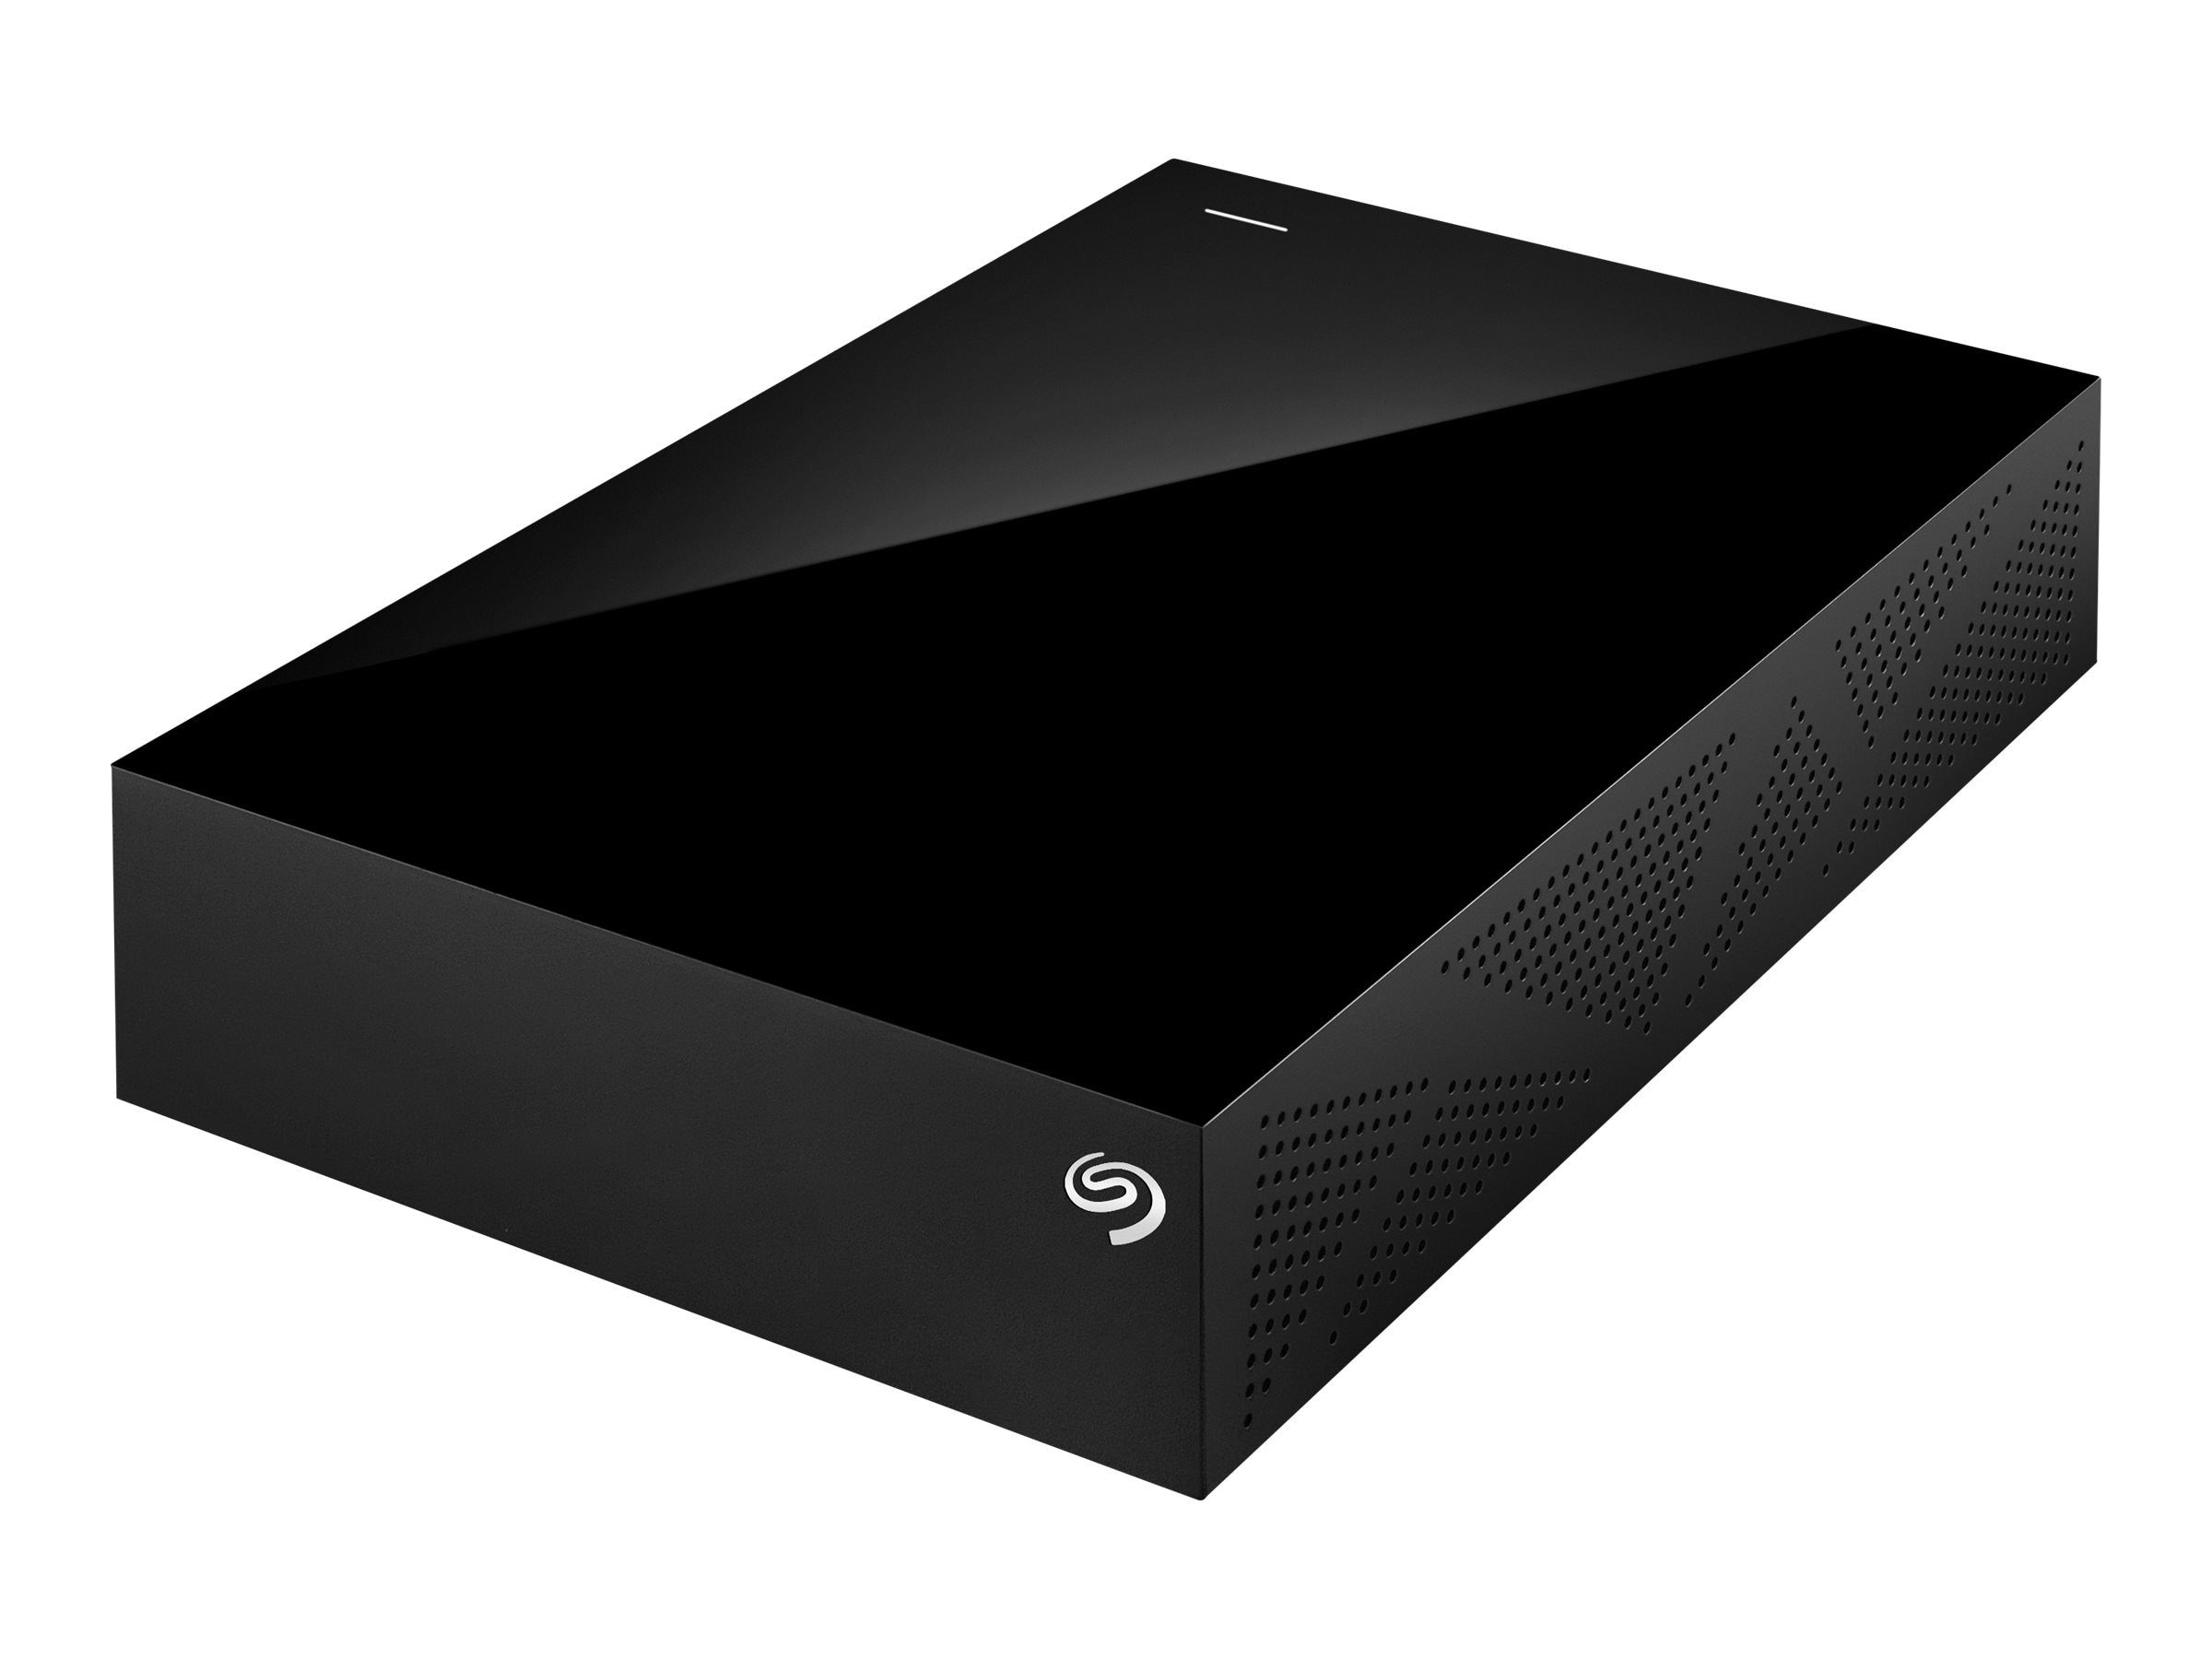 Seagate Technology STDT5000100 Image 1